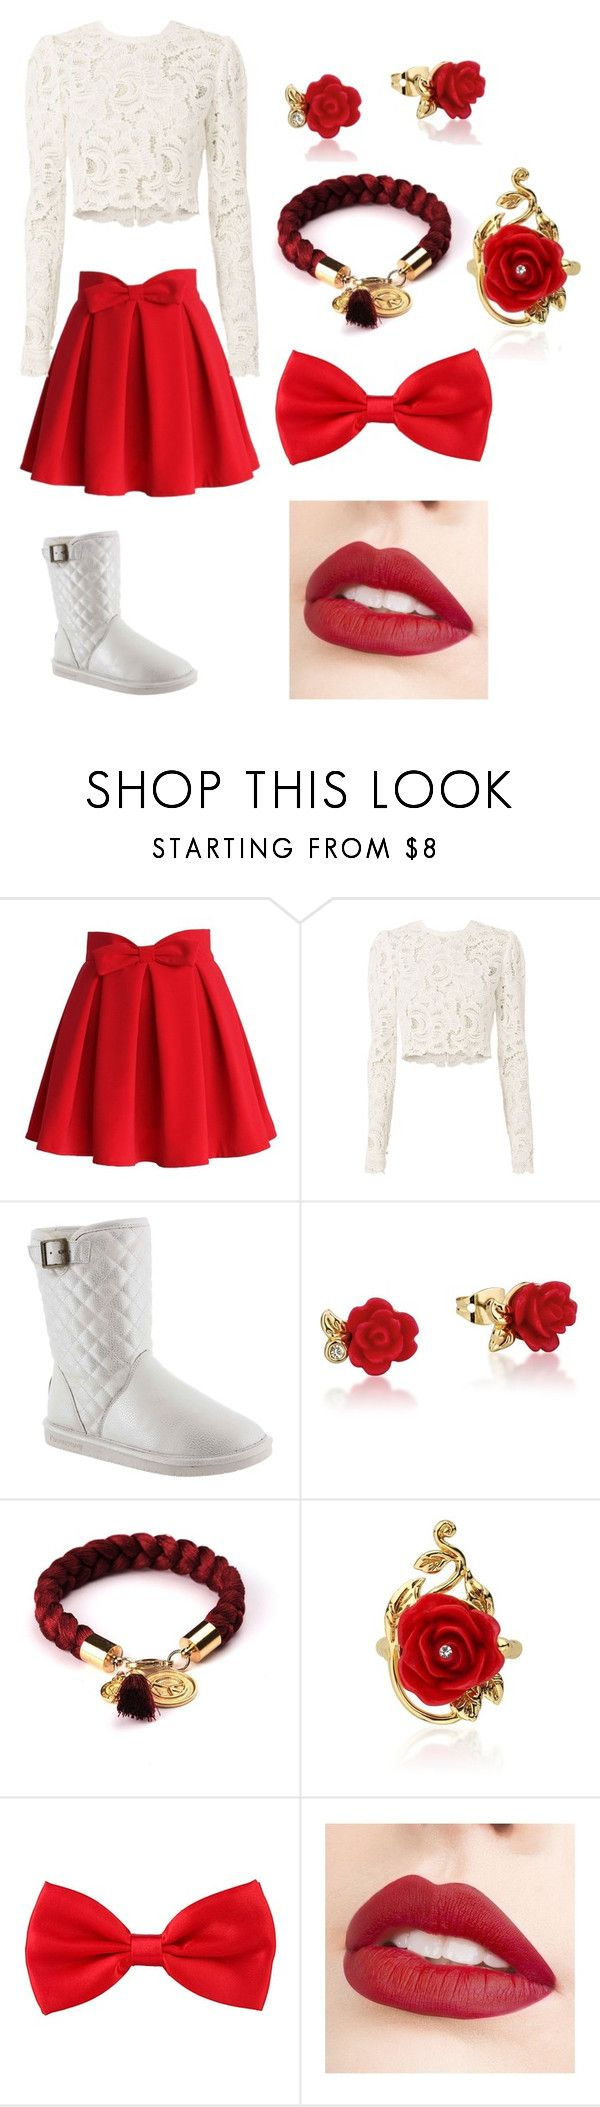 """Untitled #44"" by moriartylauren on Polyvore featuring Chicwish, A.L.C., Bearpaw, Disney and Jouer"